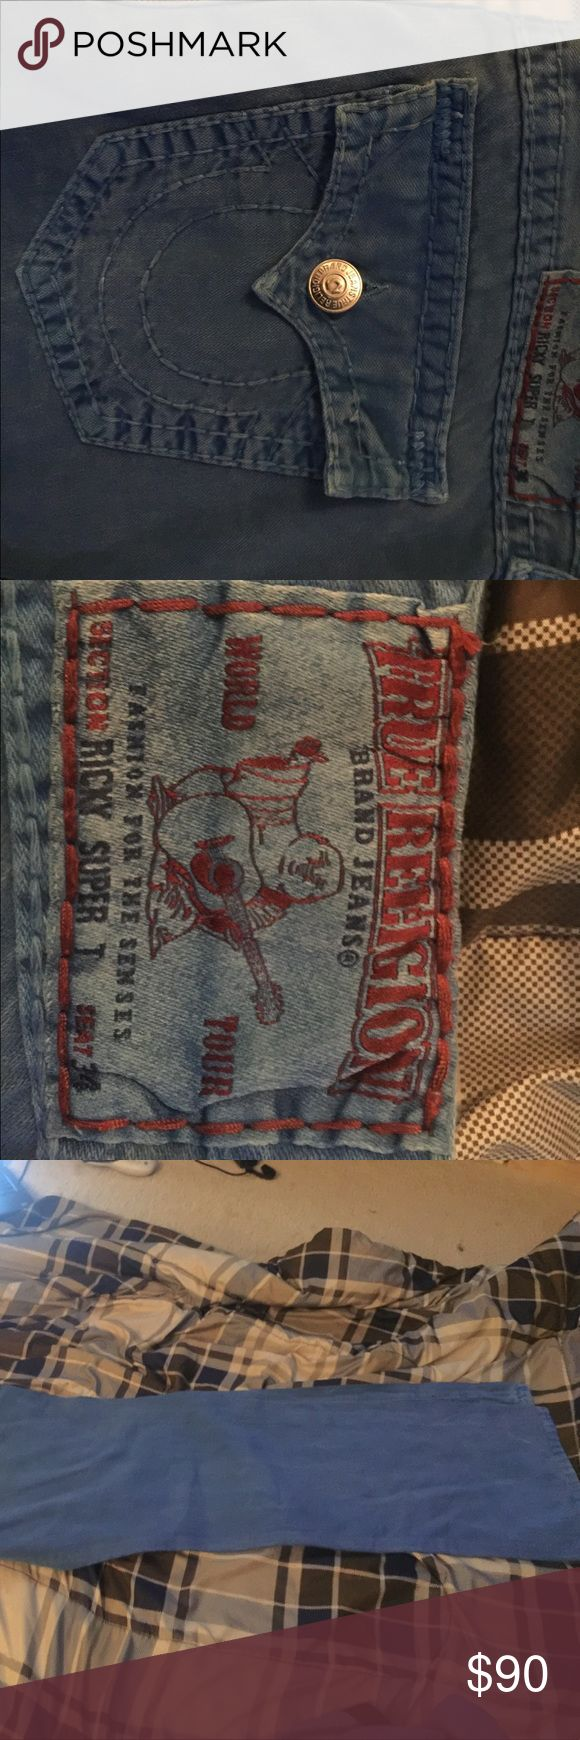 """True Religion Ricky Straight Super T Jeans 100% Real...5 pocket construction....Zip fly with Button closure...99% cotton 1% elastane...17.5"""" Leg Opening True Religion Jeans Straight"""